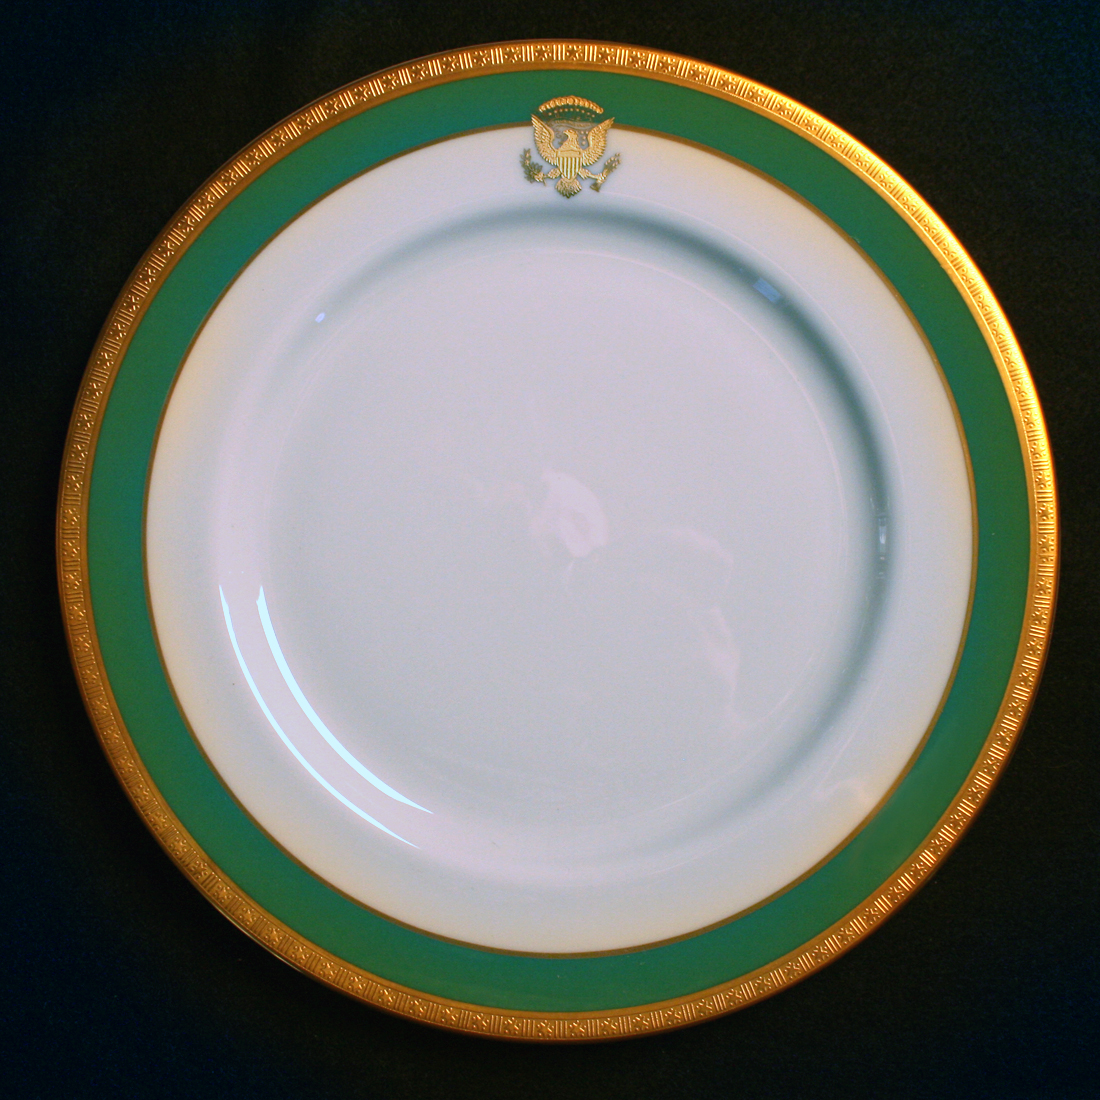 jimmy carter white house china,raleigh degeer amyx,the raleigh degeer amyx collection,